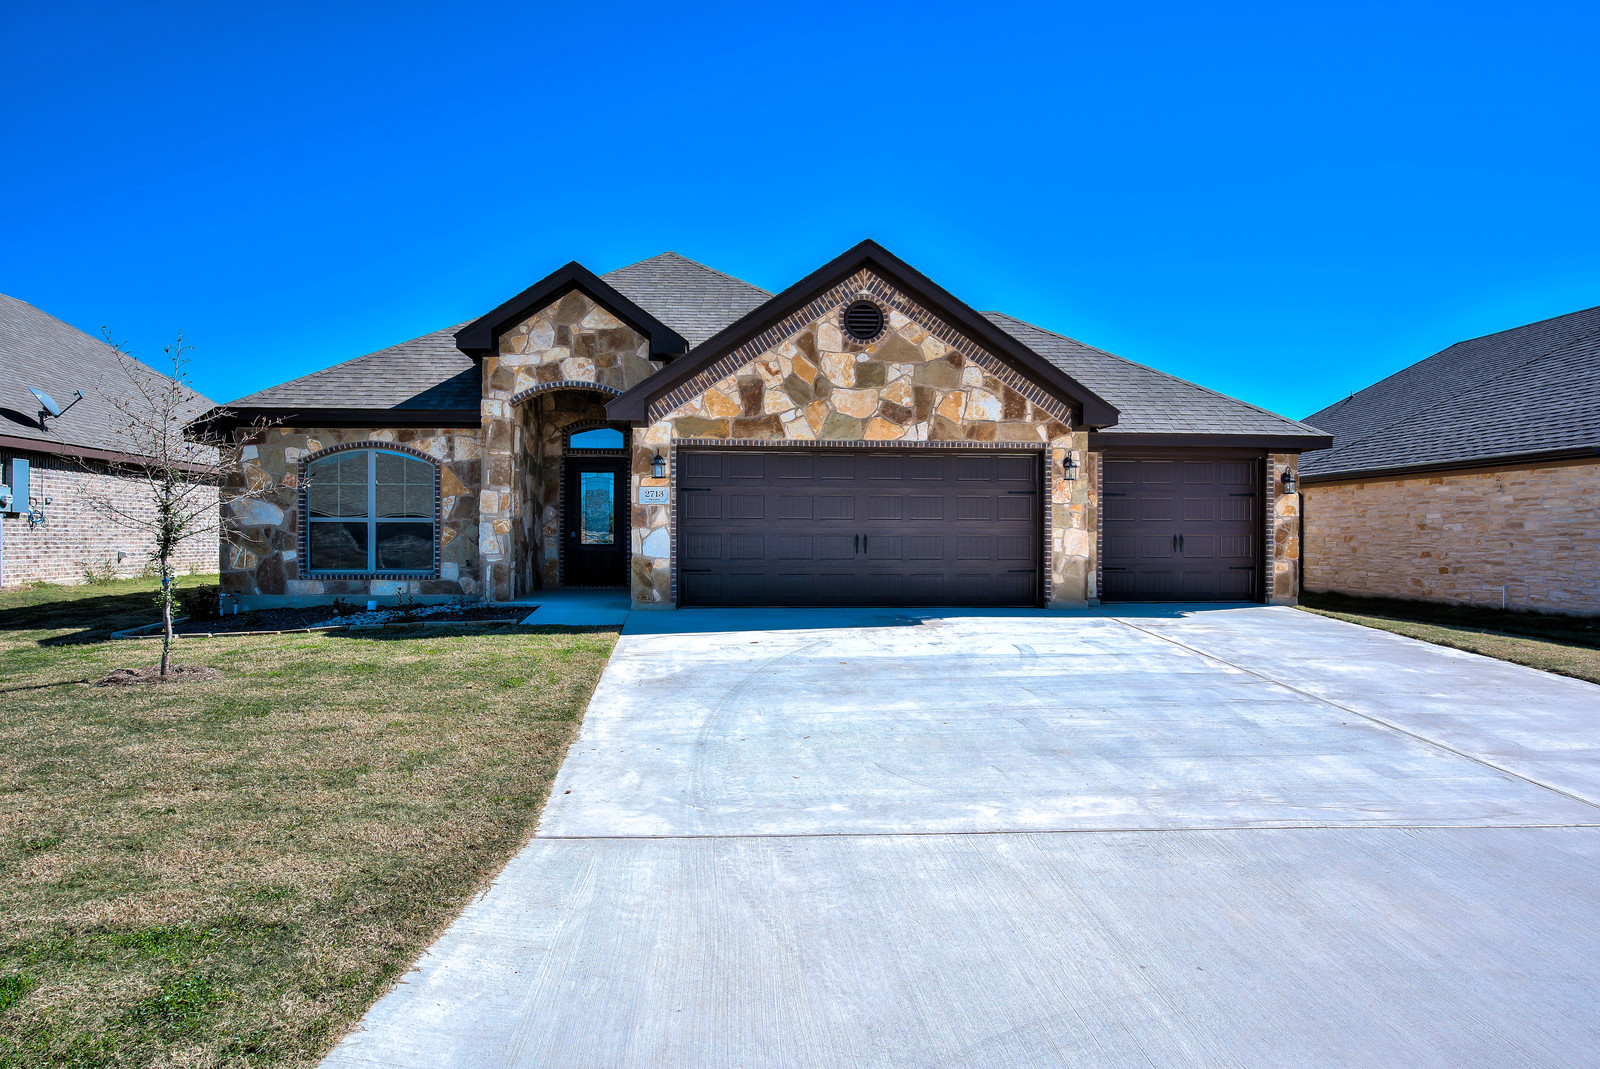 3 Car Garage Home for Sale Temple TX